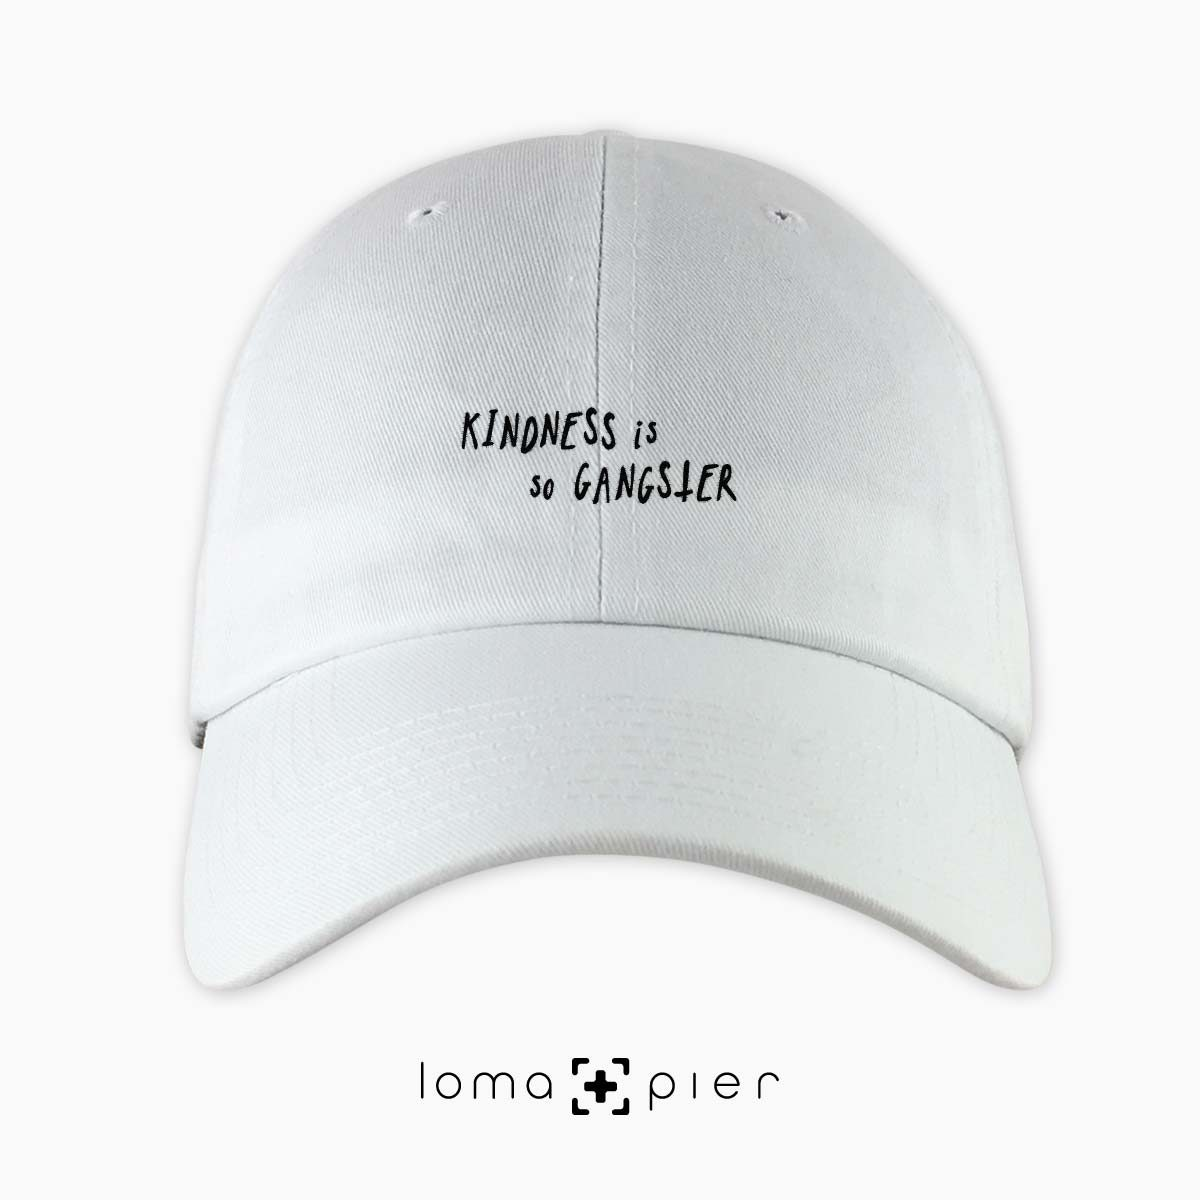 KINDNESS IS SO GANGSTER typography embroidered on a white unstructured dad hat with black thread by loma+pier hat store made in the USA